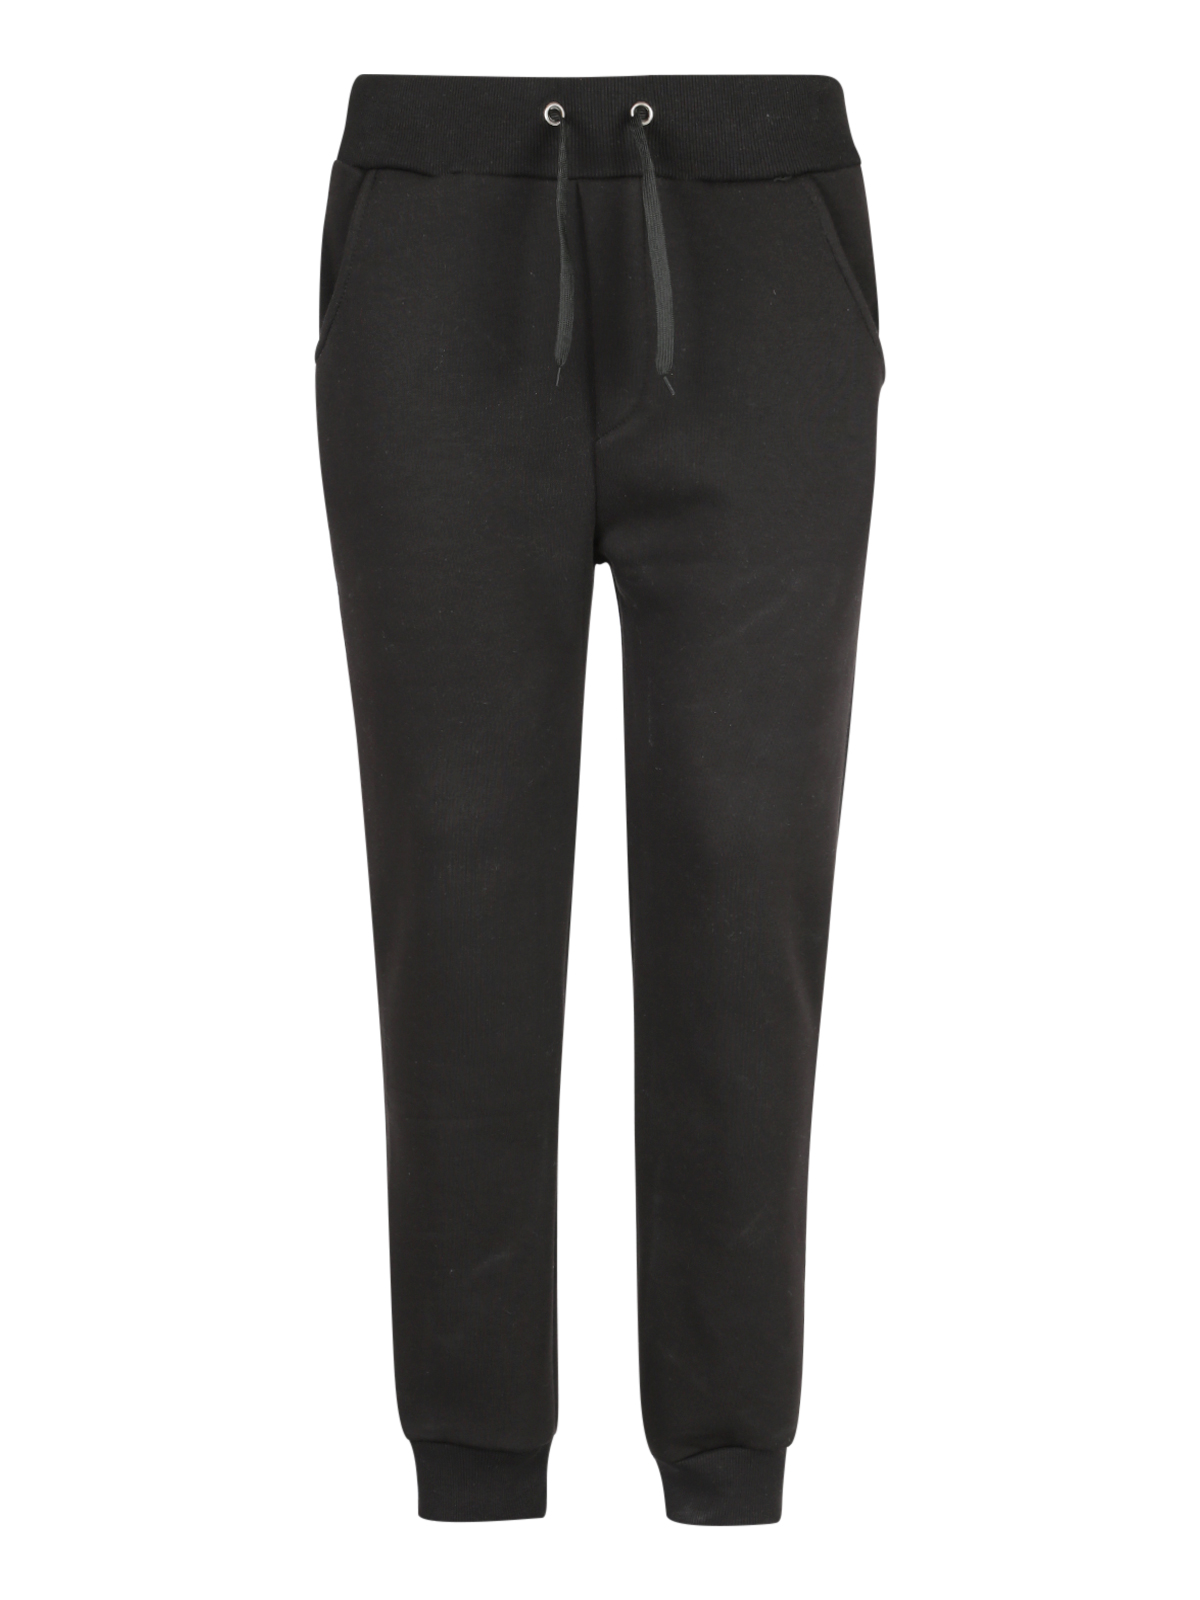 Heavy Sports Pants-Black